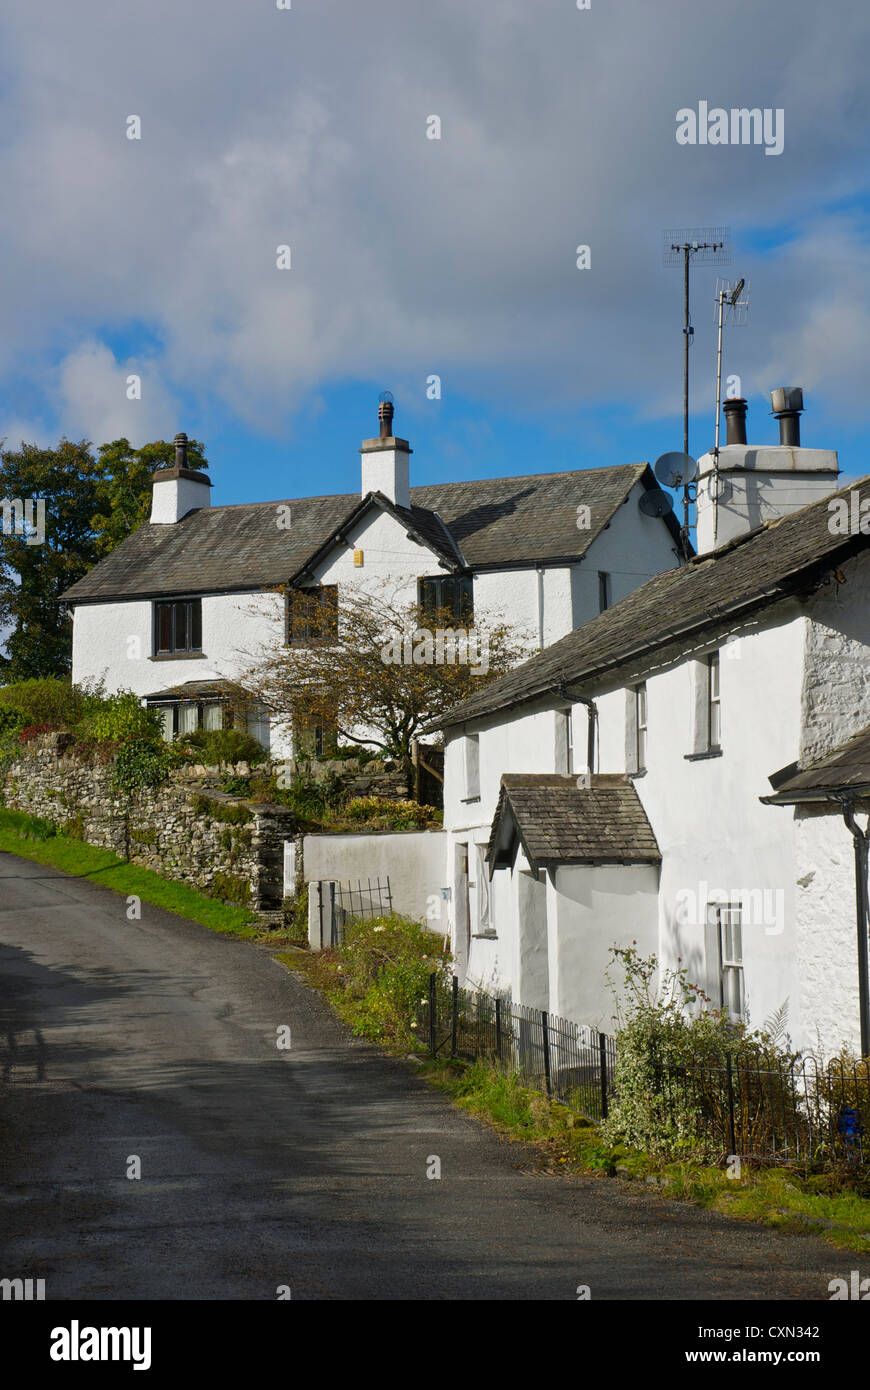 Houses in Skelwith Fold, near Ambleside, Lake District National Park, Cumbria, England UK - Stock Image